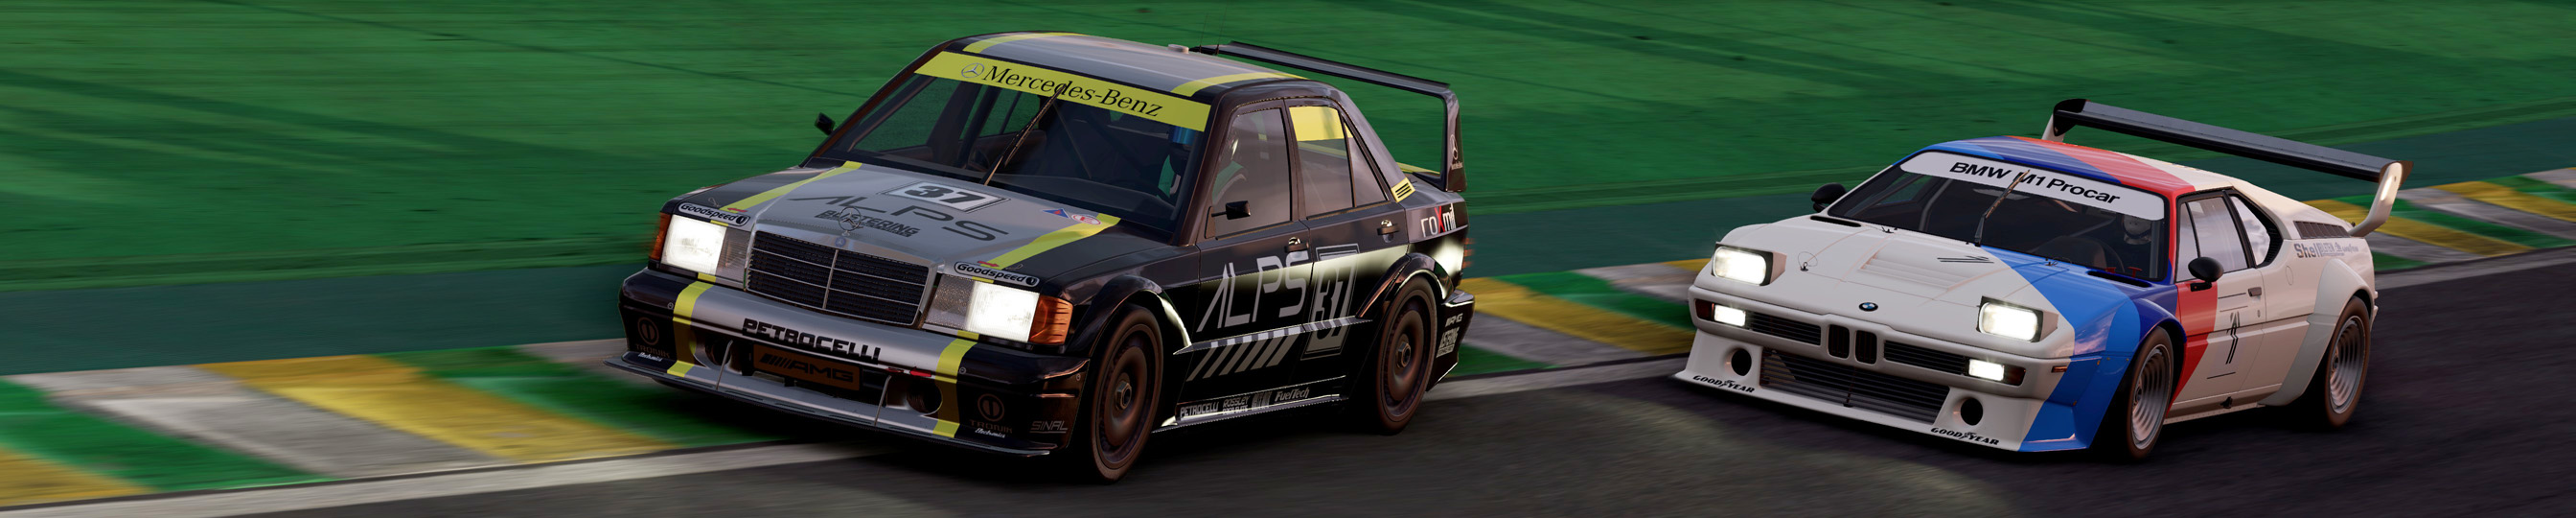 3 AMS2 MINI & BMW at INTERLAGOS crop copy.jpg